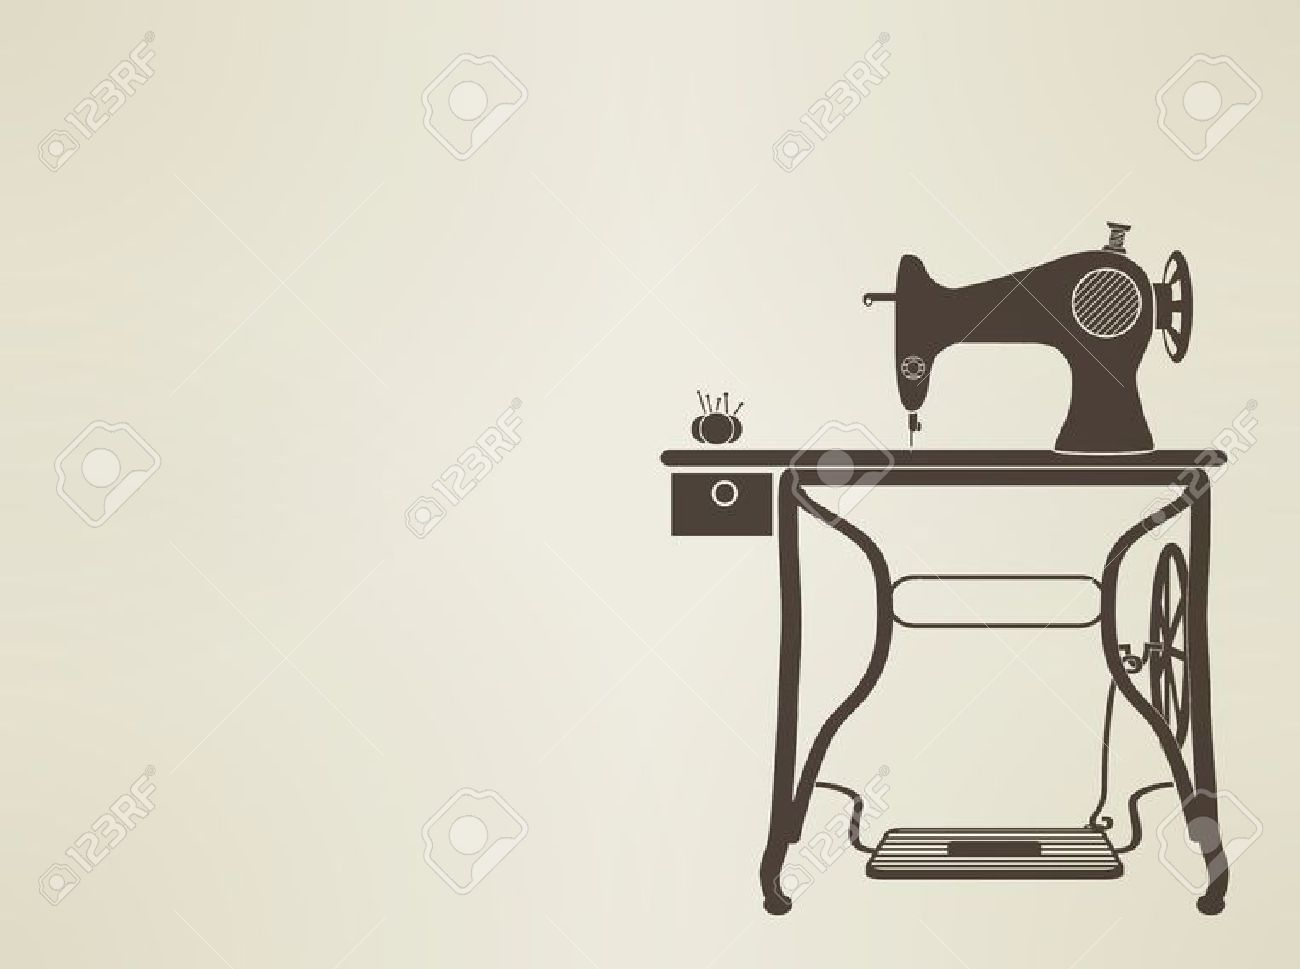 4,060 Sewing Machine Stock Vector Illustration And Royalty Free.